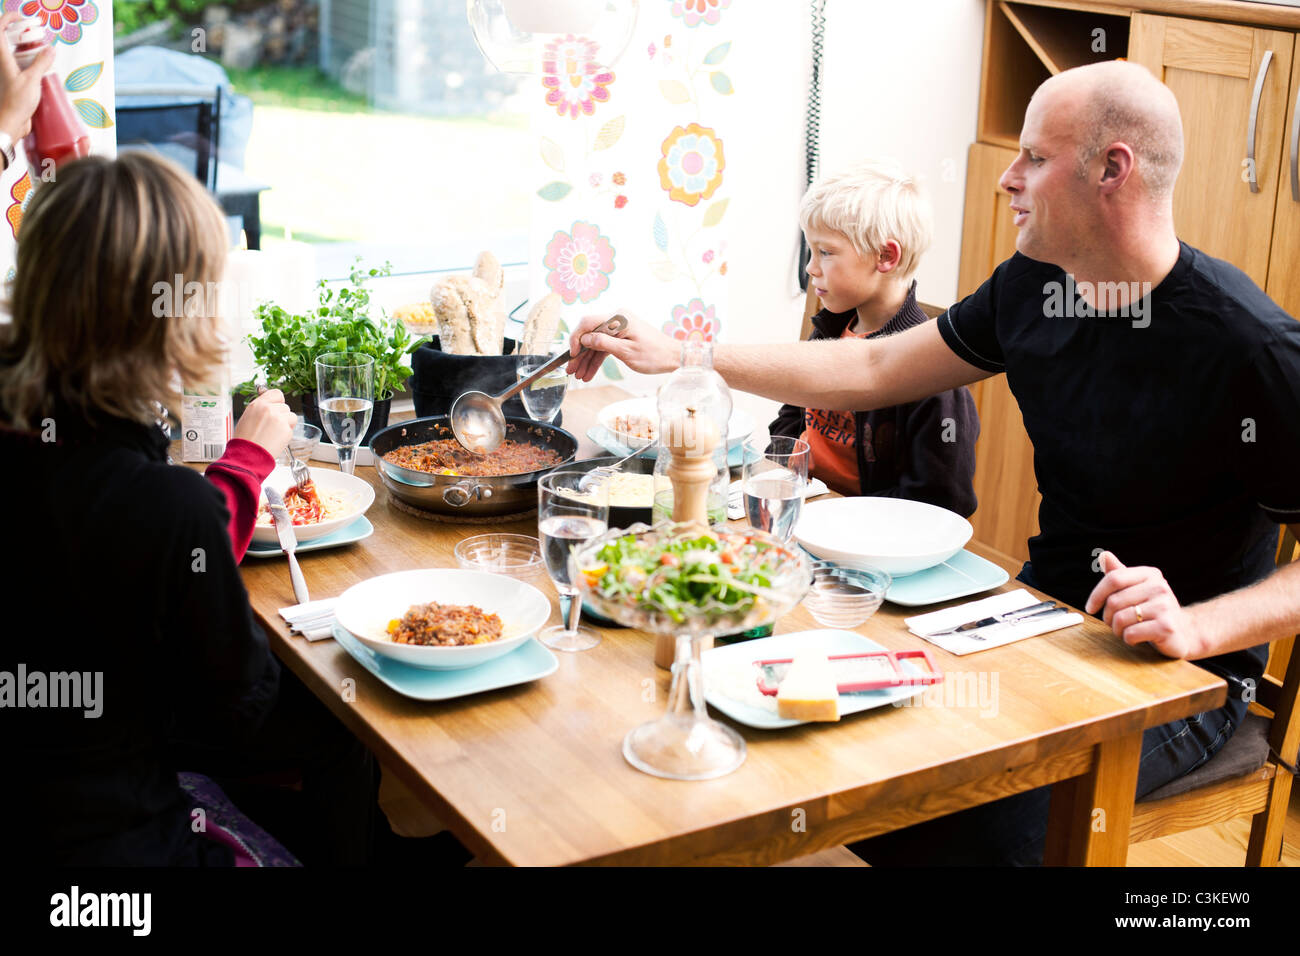 Family eating meal at restaurant - Stock Image